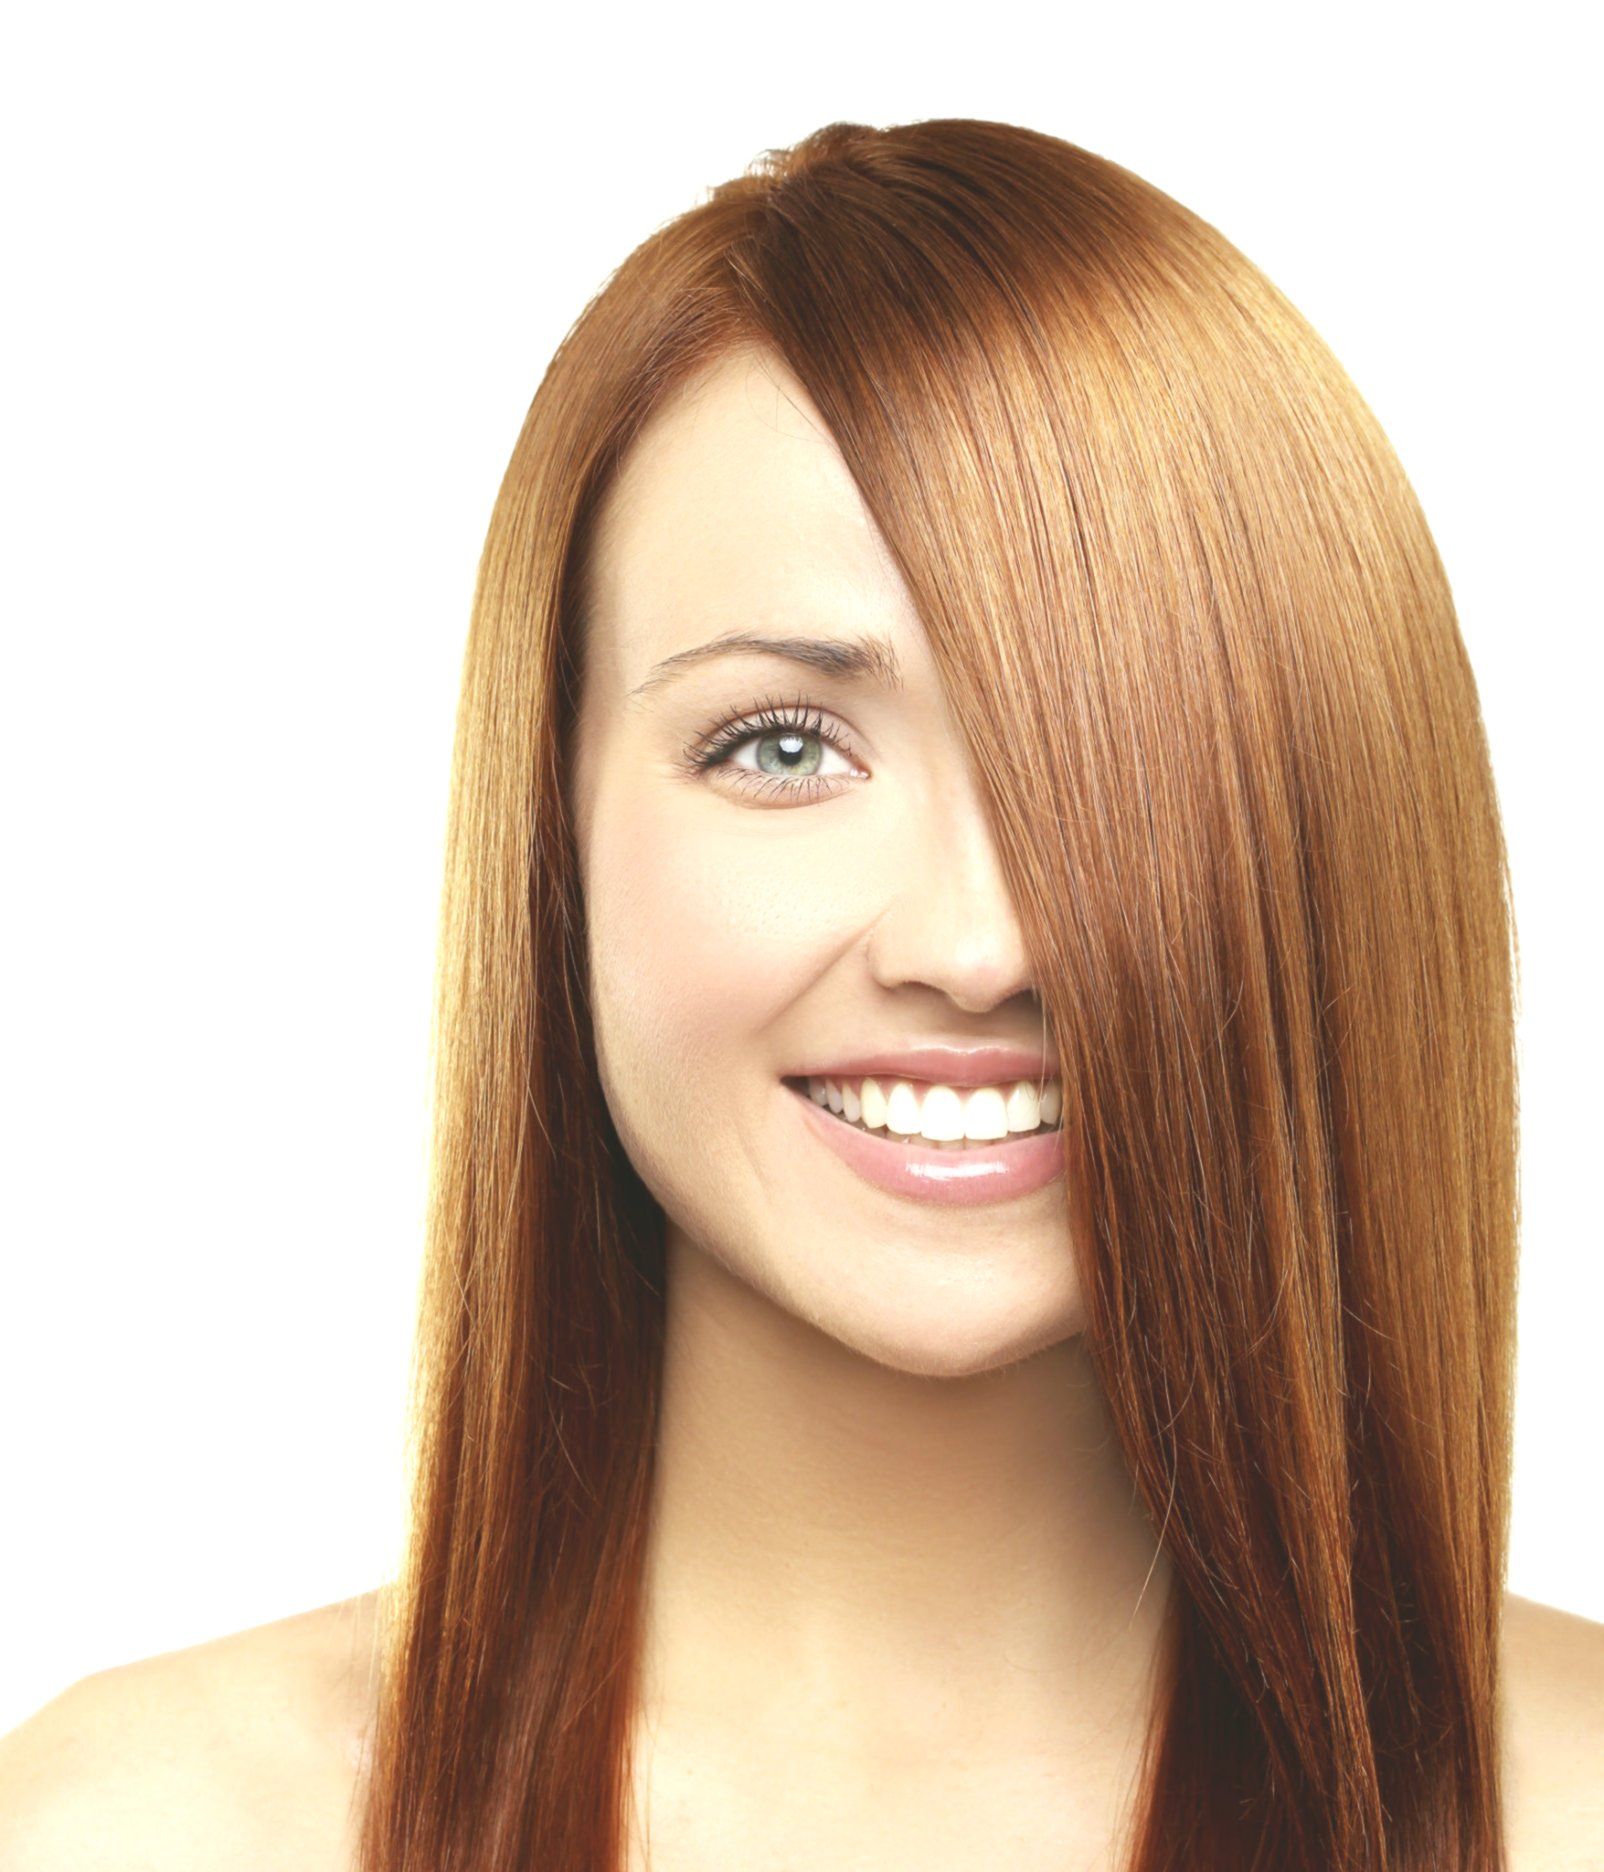 new hair color caramel brown concept-Awesome hair color caramel brown decor